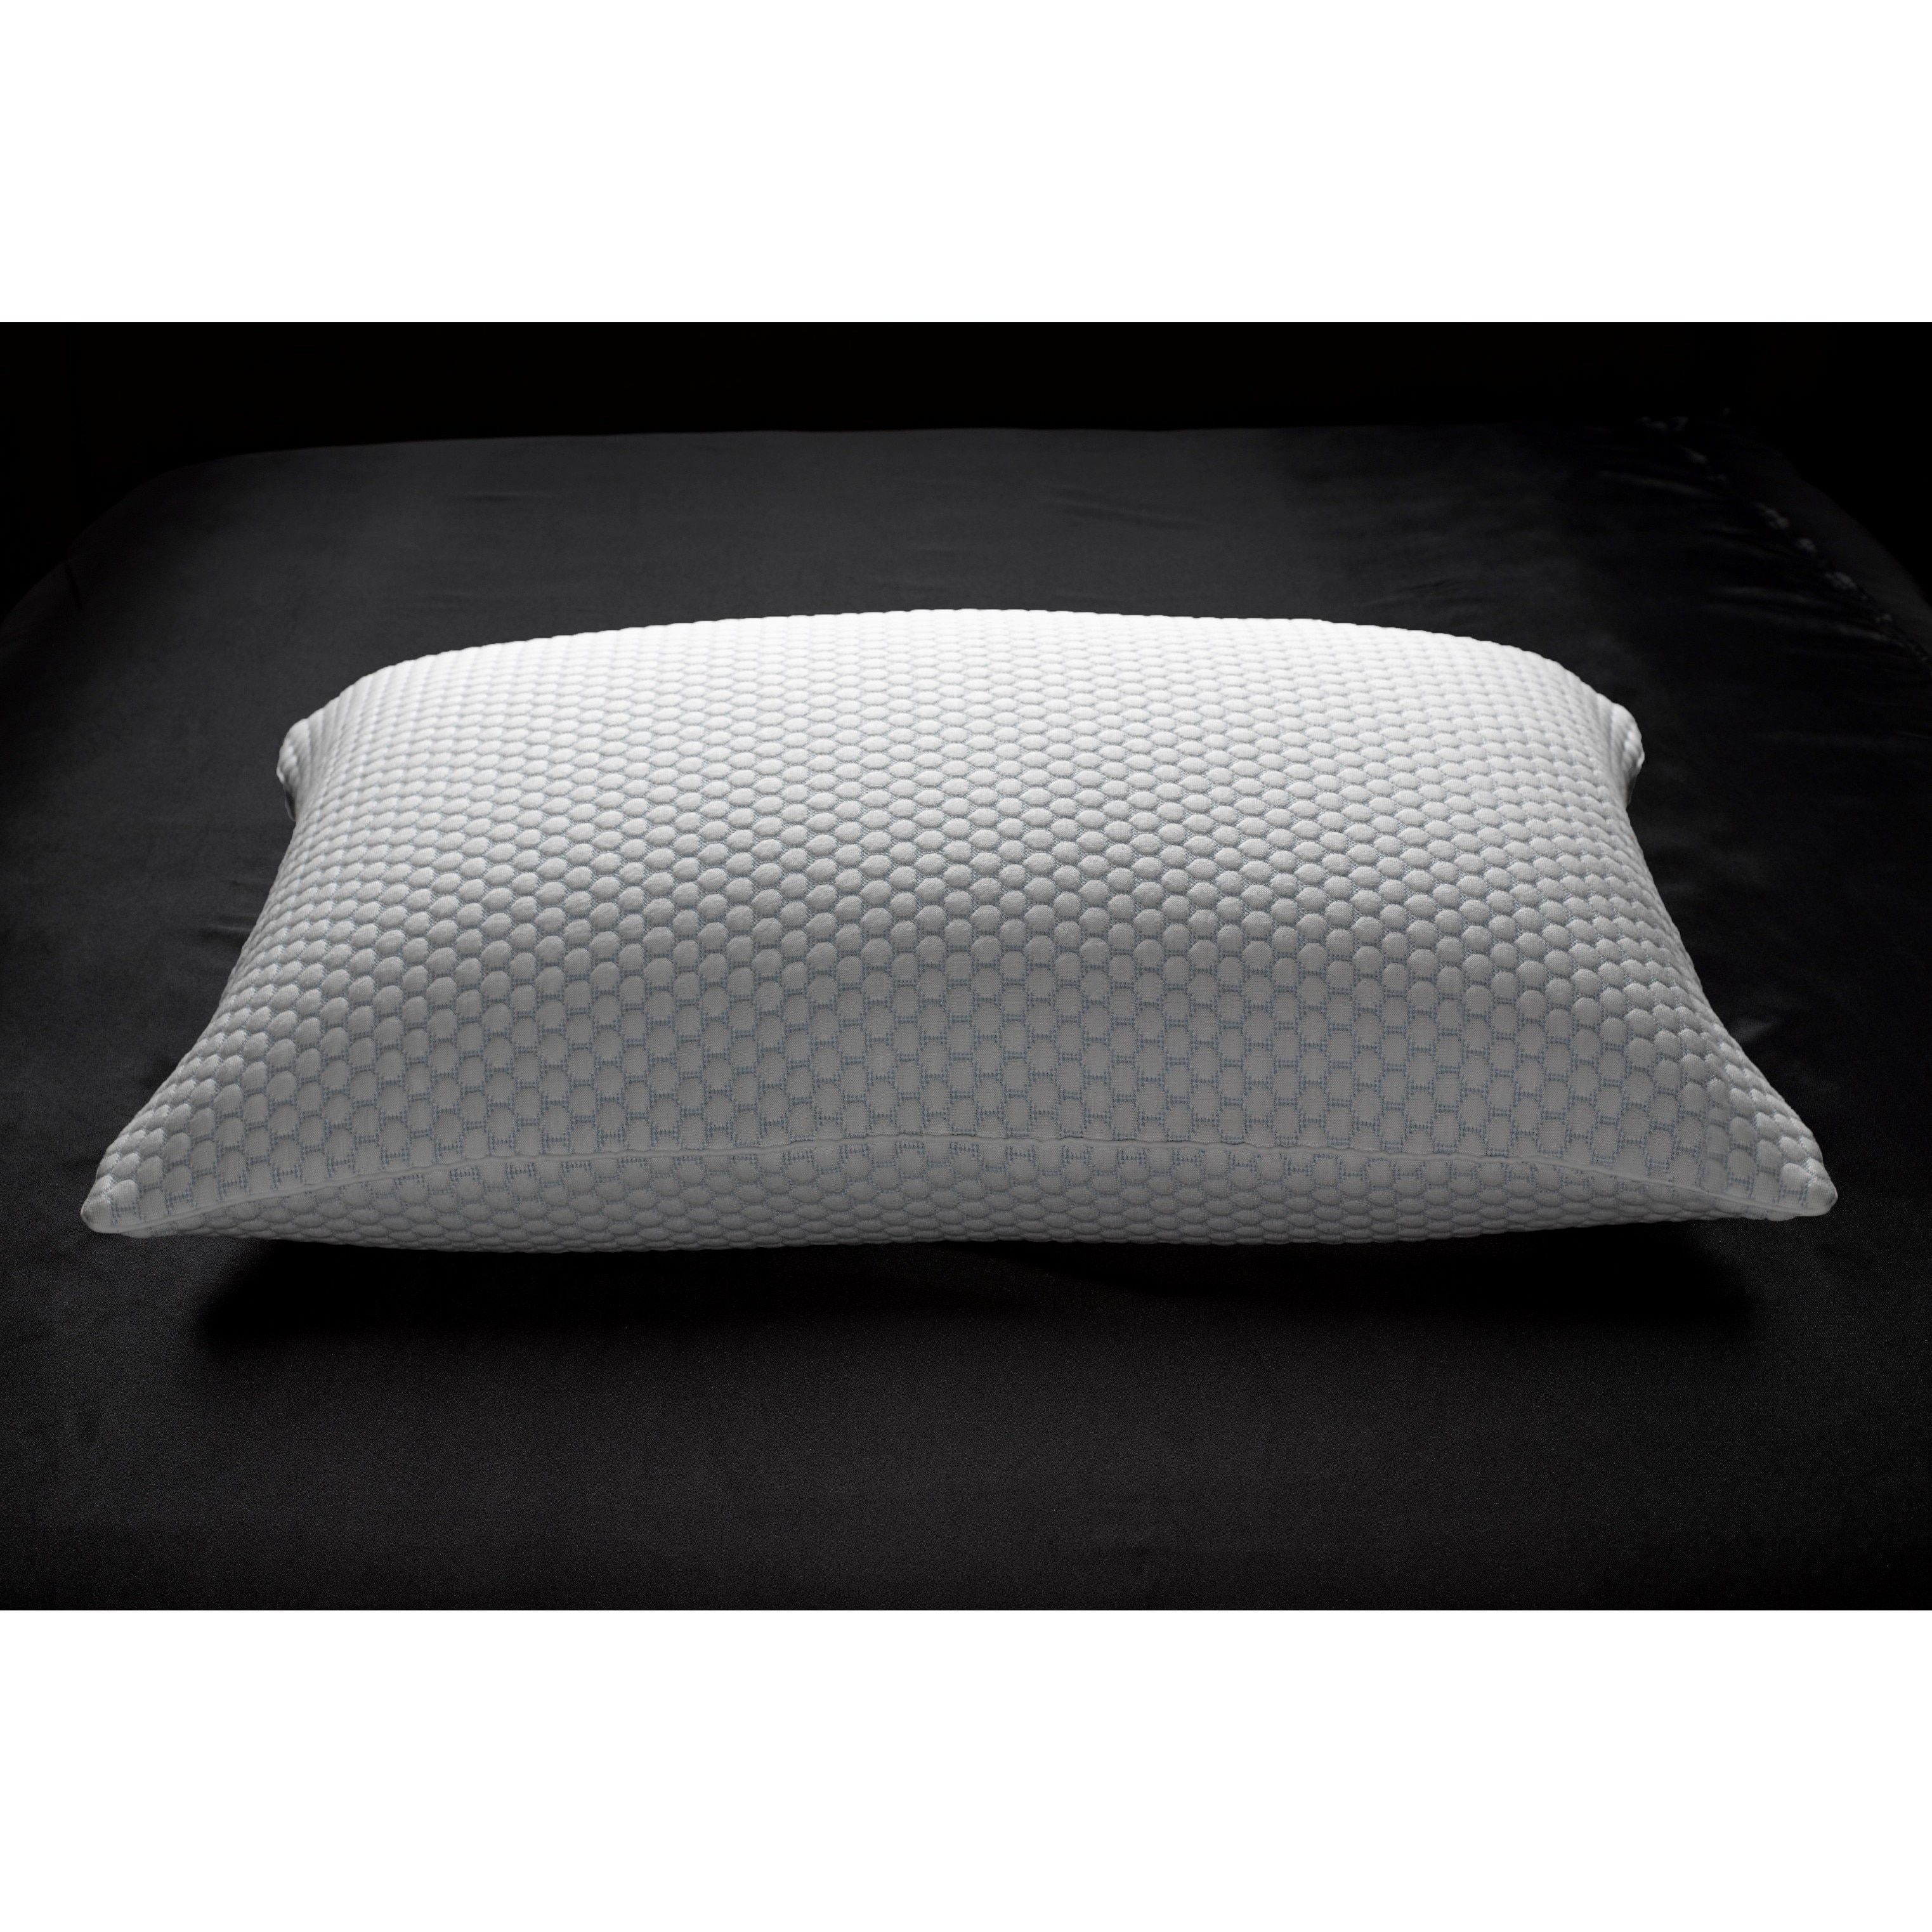 svm unique pillow part posturepedic house perfect of post foam memory cooling pillows best related sealy chill